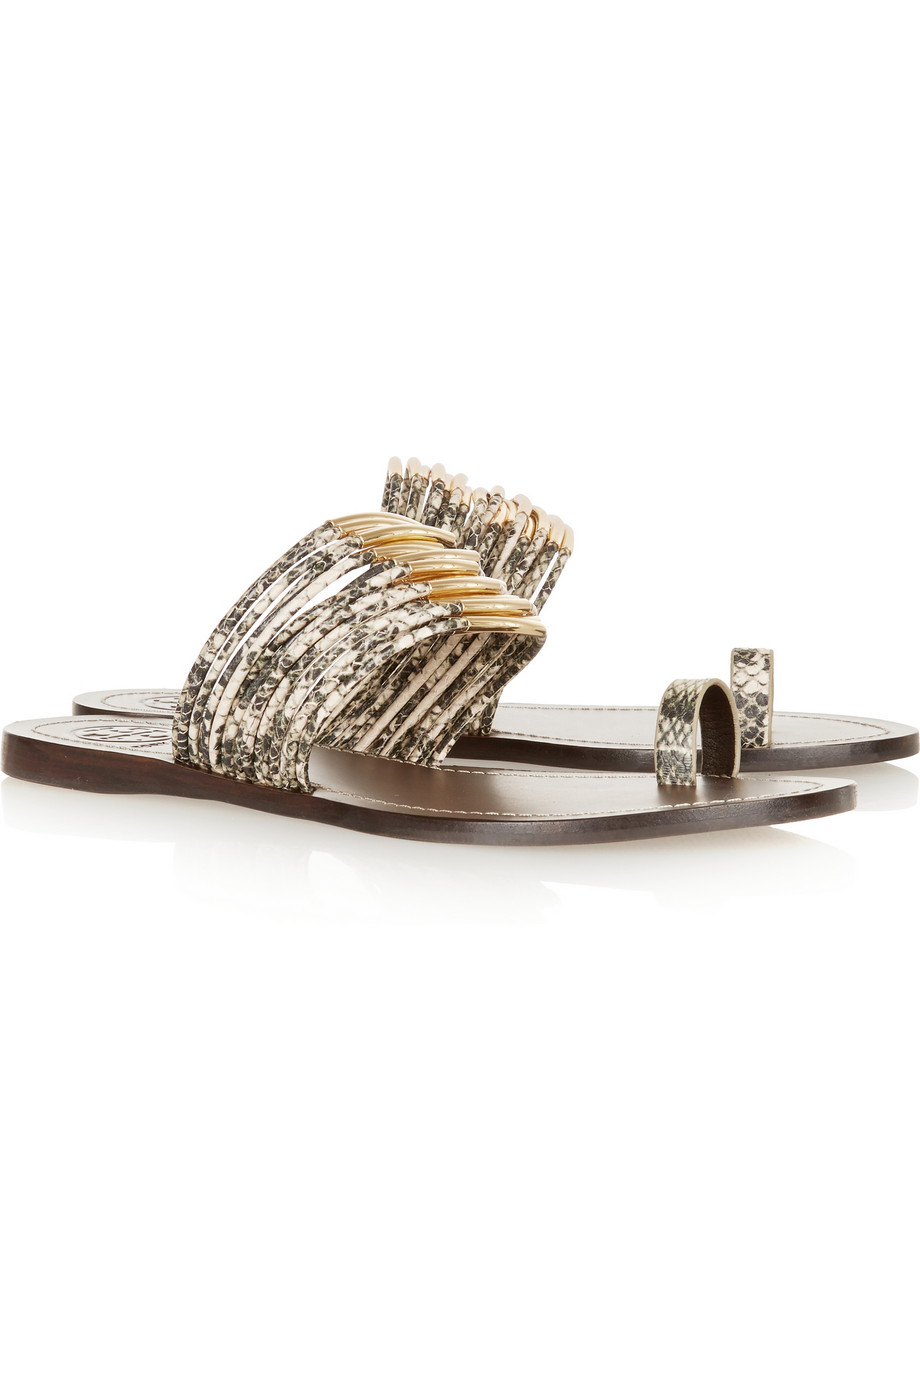 be9080cdbc4f Lyst - Tory Burch Mignon Embellished Snake-Effect Leather Sandals in ...